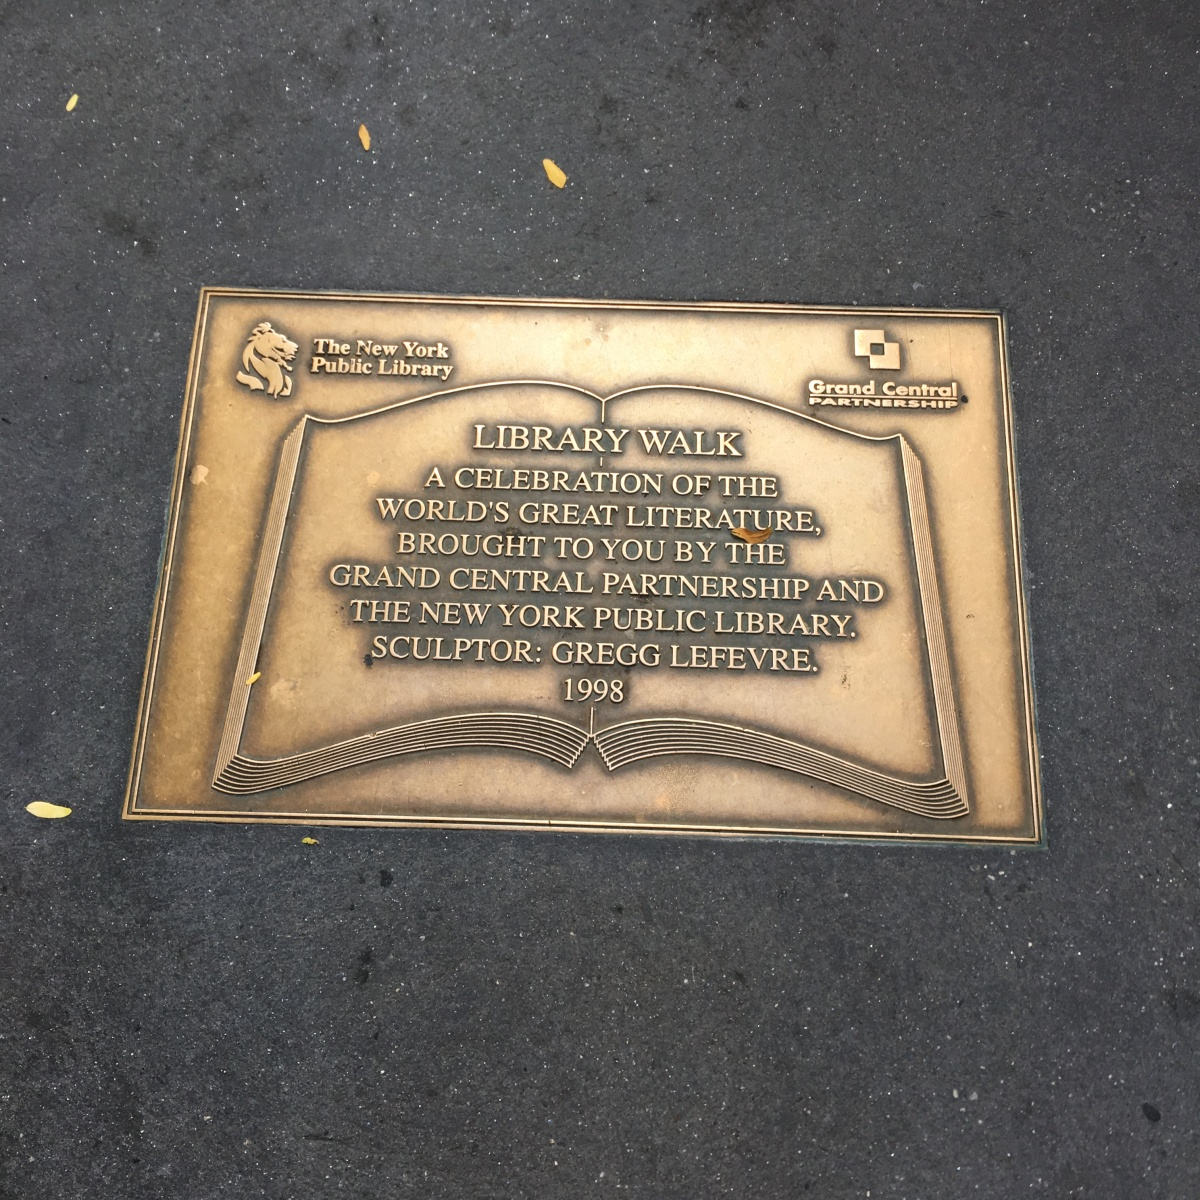 """Bronze-gold colored plaque embedded in a New York sidewalk.Its inscription reads: """"Library Walk. A celebration of the world's great literature, brought to you by the Grand Central Partnership and the New York Public Library. Sculptor: Gregg LeFevre. 1998."""